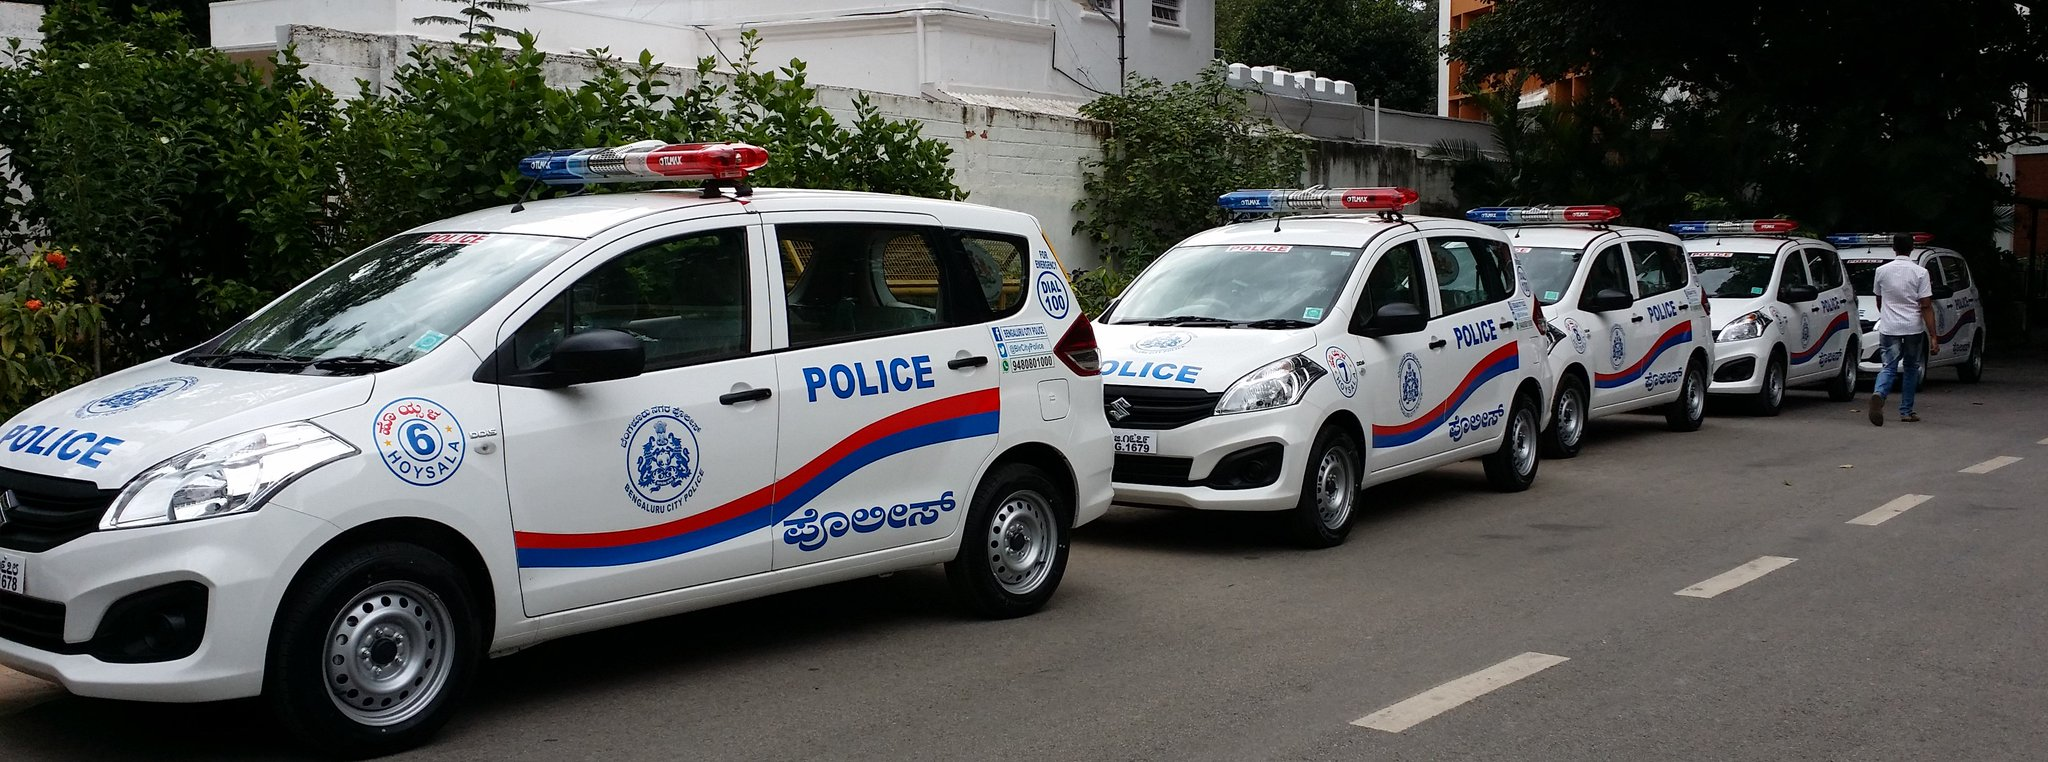 File:Bangalore-City-Police-Car.jpg - Wikipedia